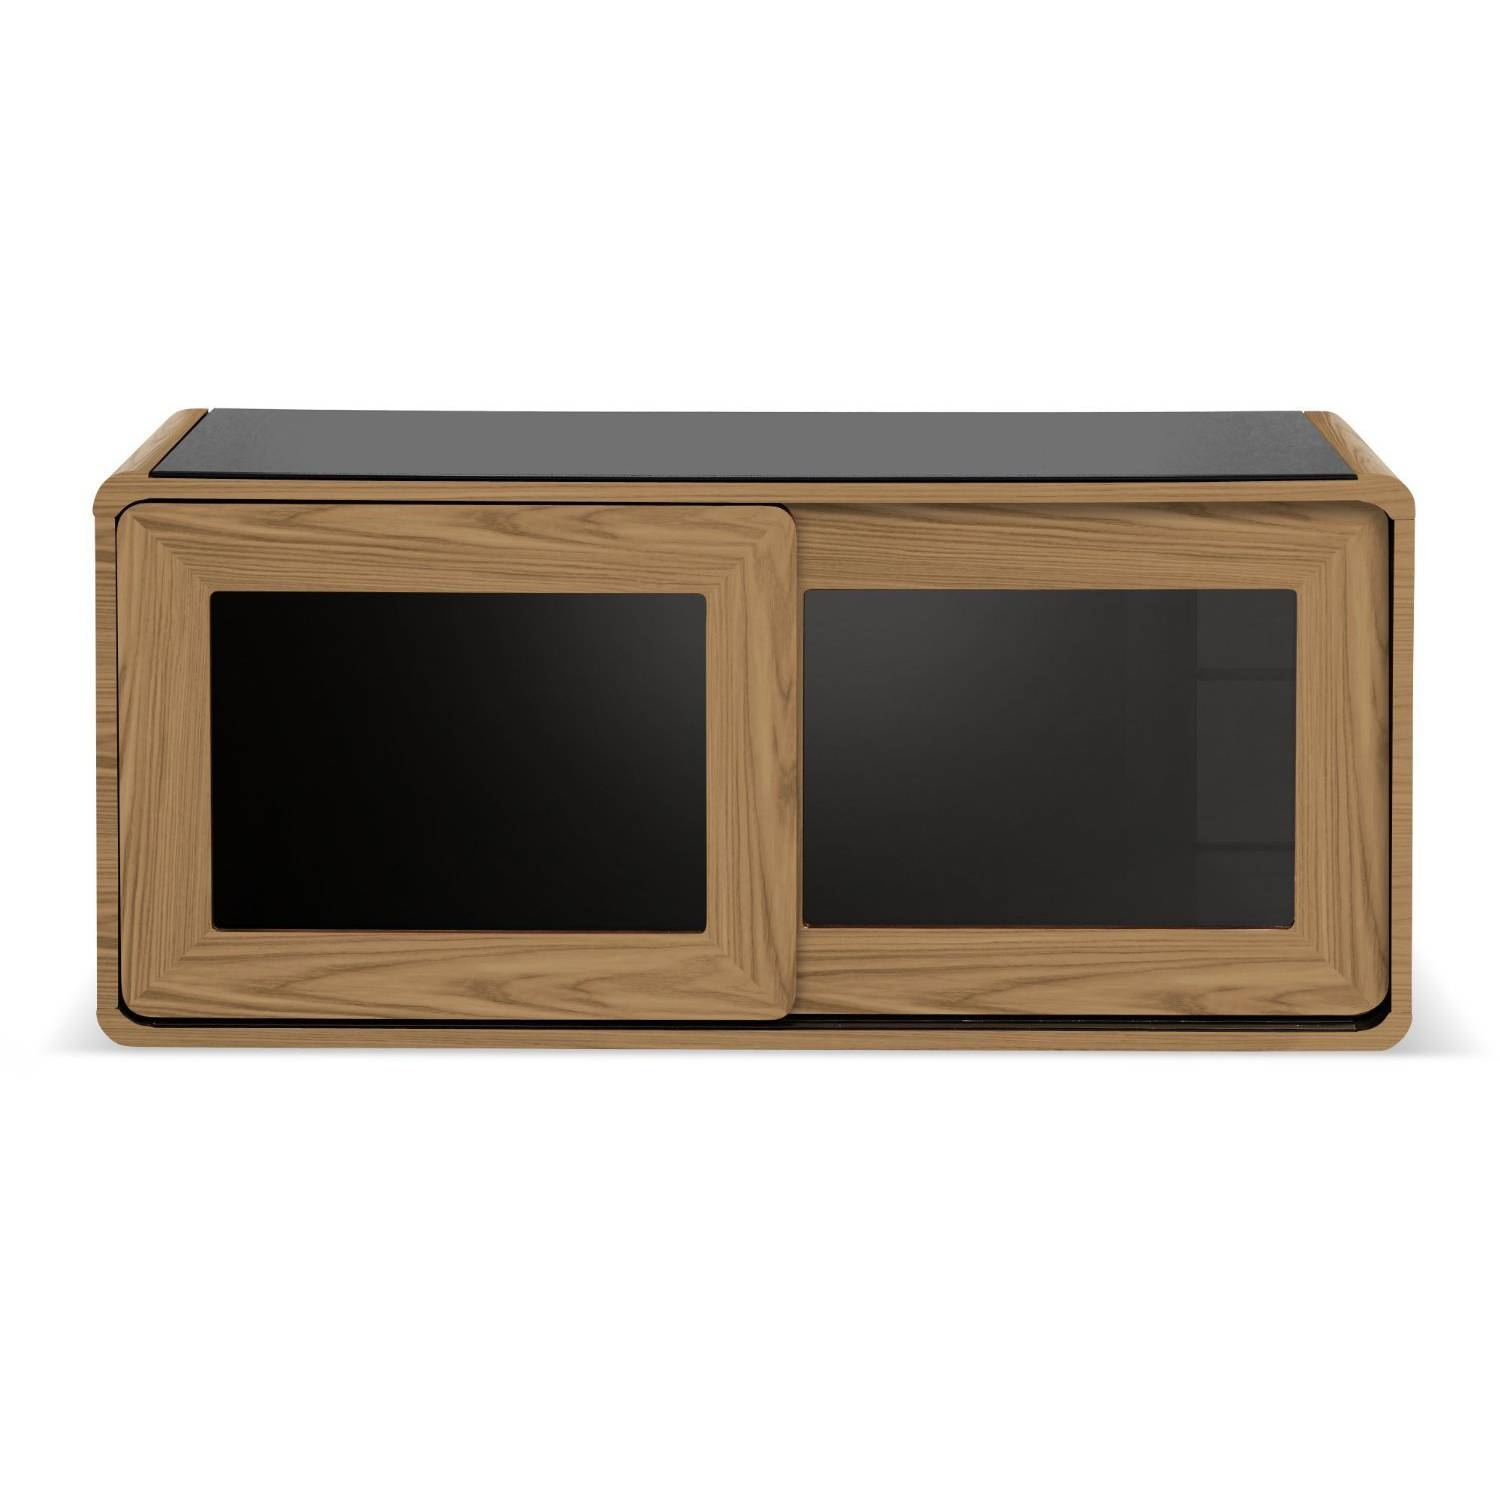 Centurion Supports Nora Oak With Beam Thru Glass Sliding Door Tv Intended For Beam Thru Tv Cabinet (View 15 of 15)